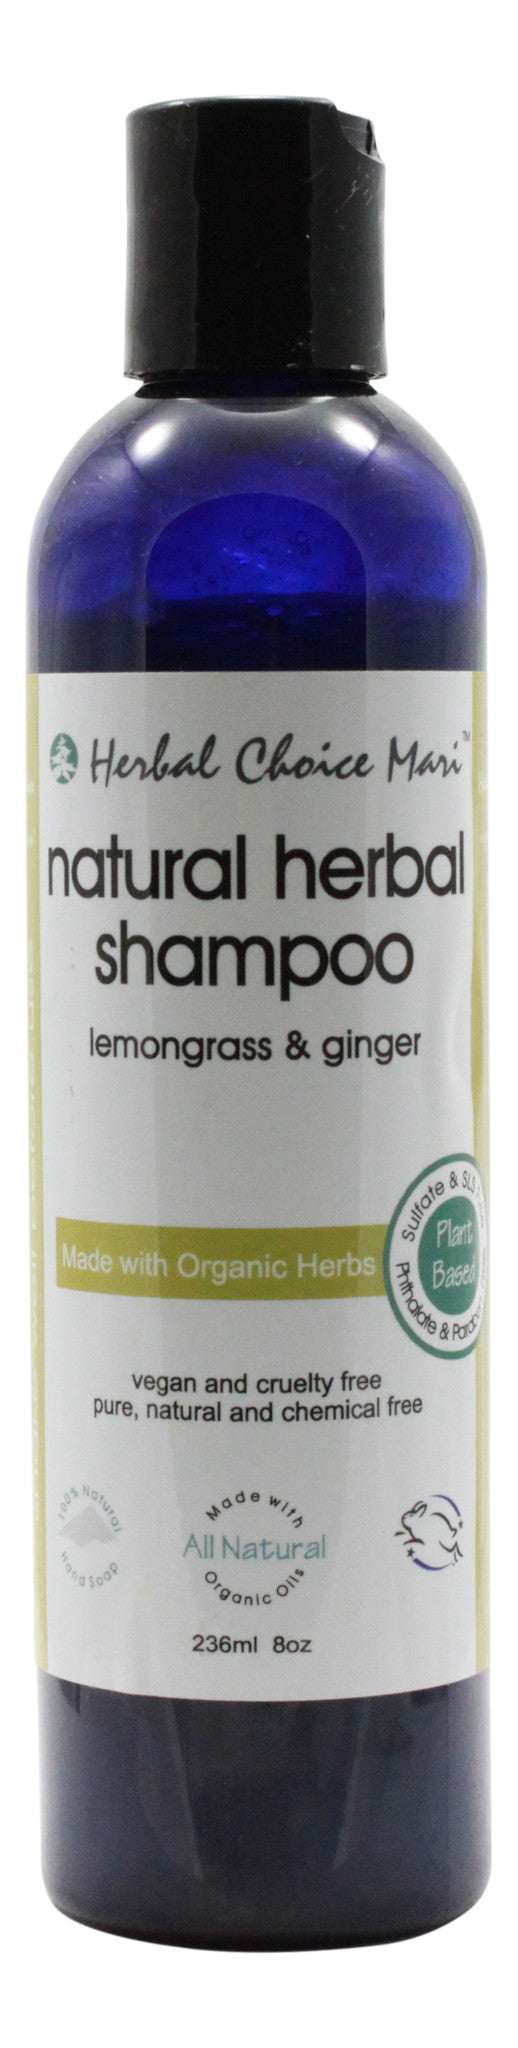 Natural Herbal Shampoo - Lemongrass & Ginger - 8 oz Bottle - Front